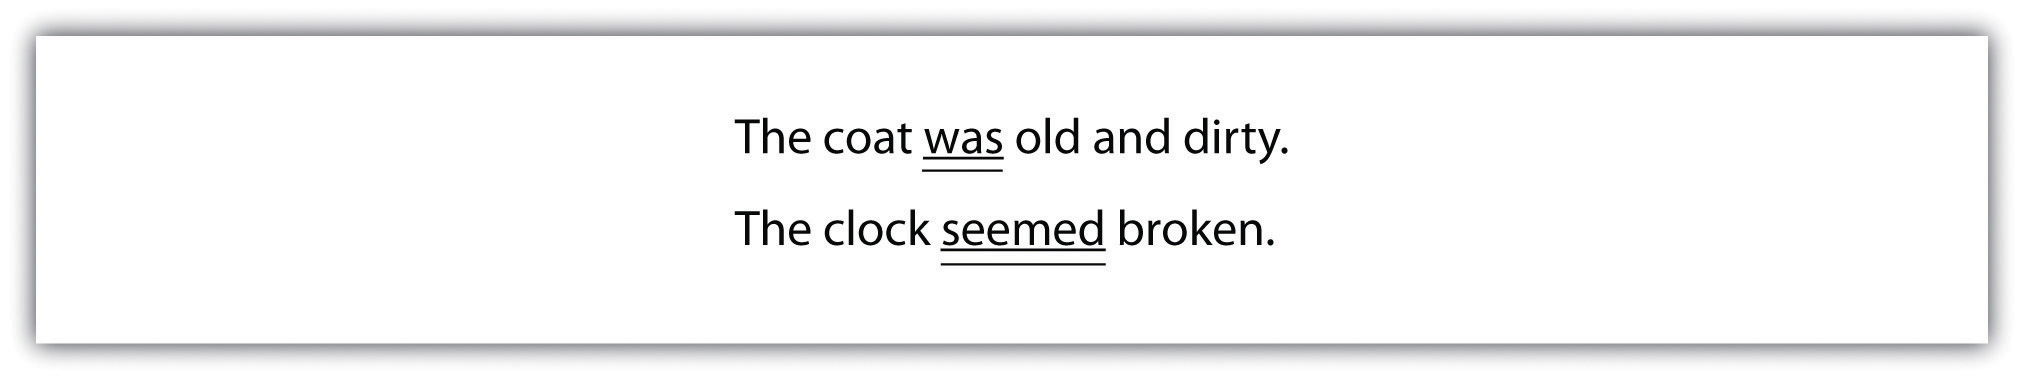 Linking Verbs  sc 1 st  2012 Book Archive & Writing Basics: What Makes a Good Sentence?